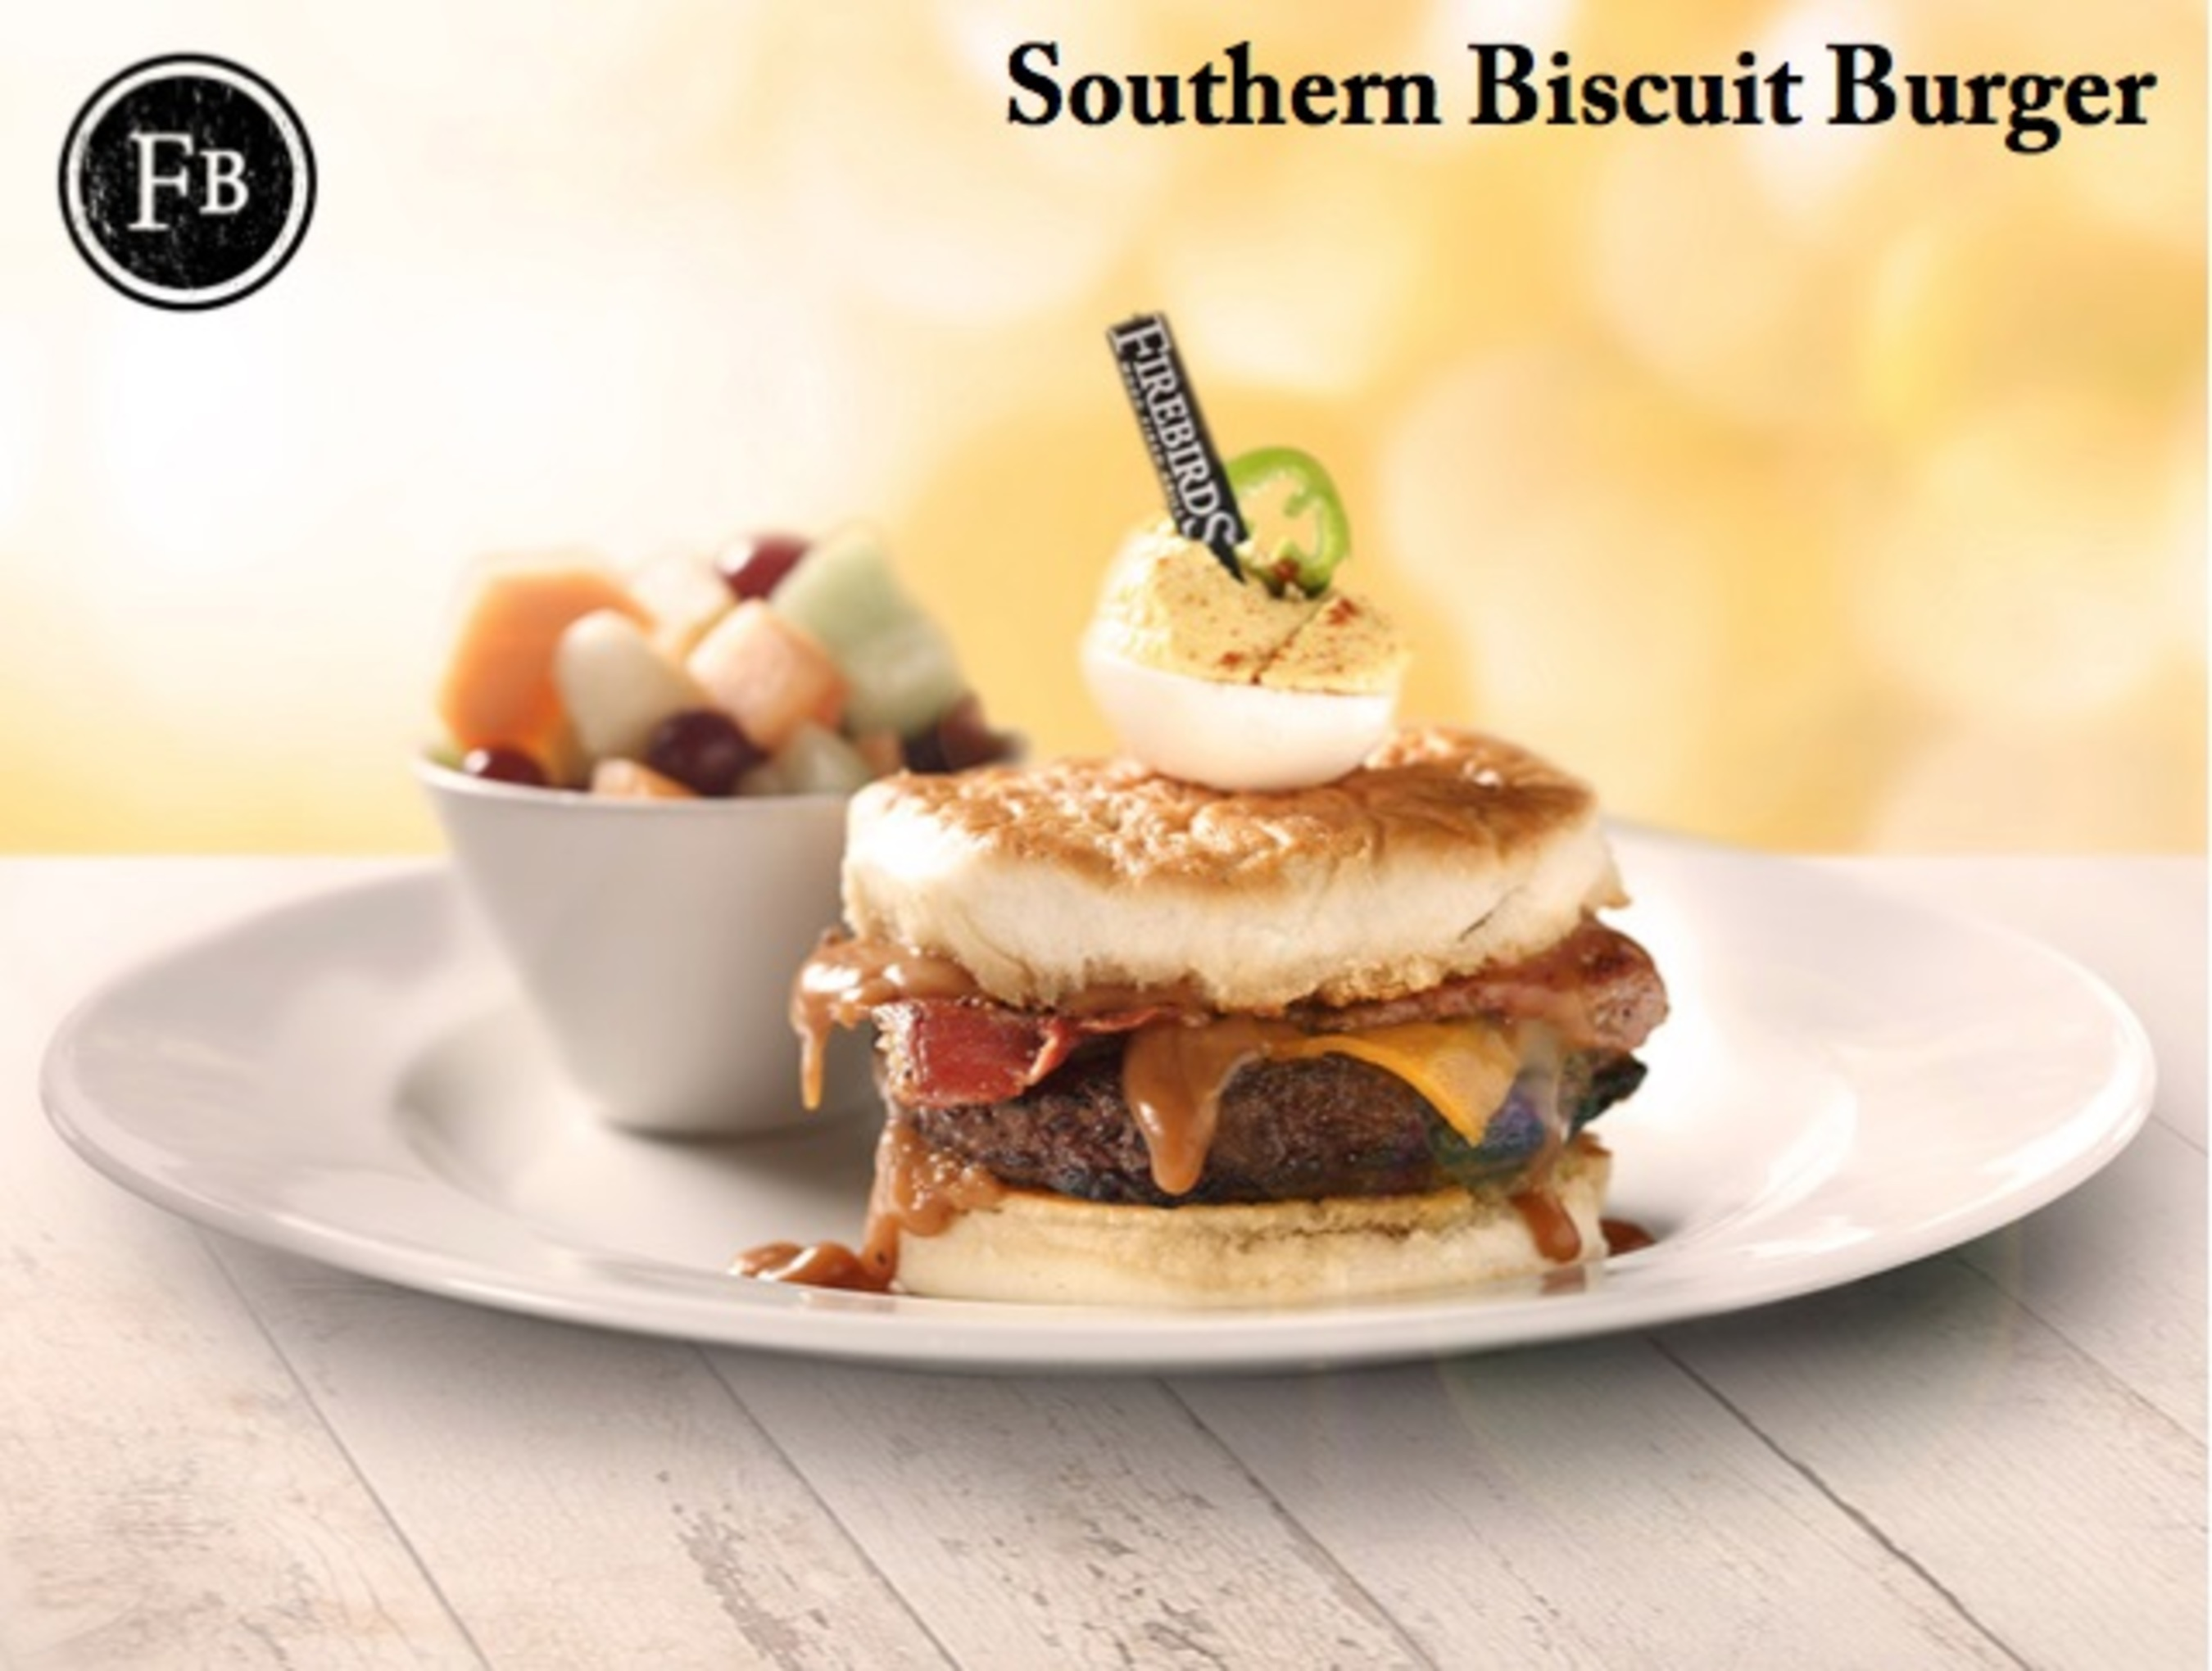 Southern Biscuit Burger